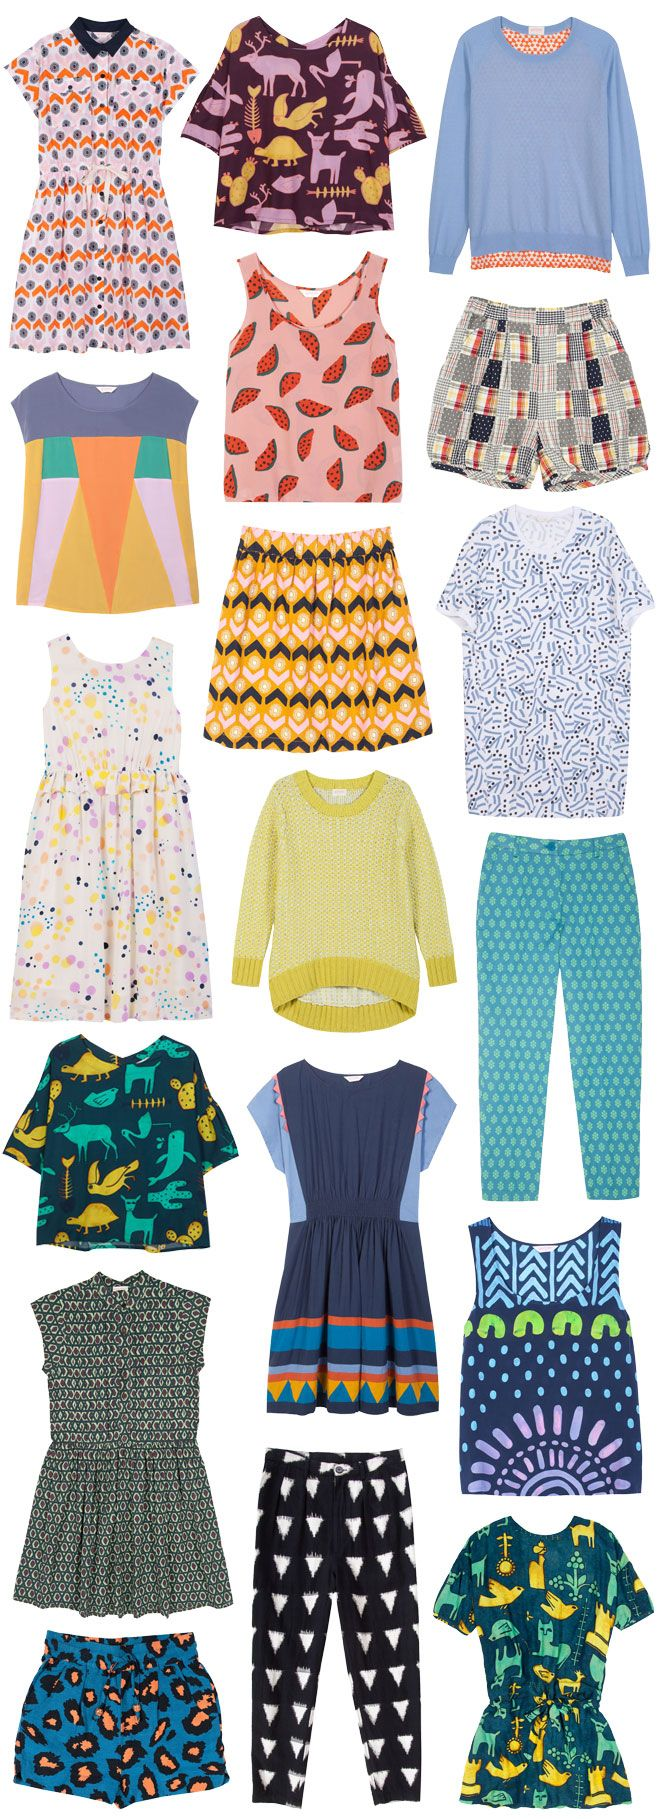 Gorman (adult clothes, inspiration for kids clothes)